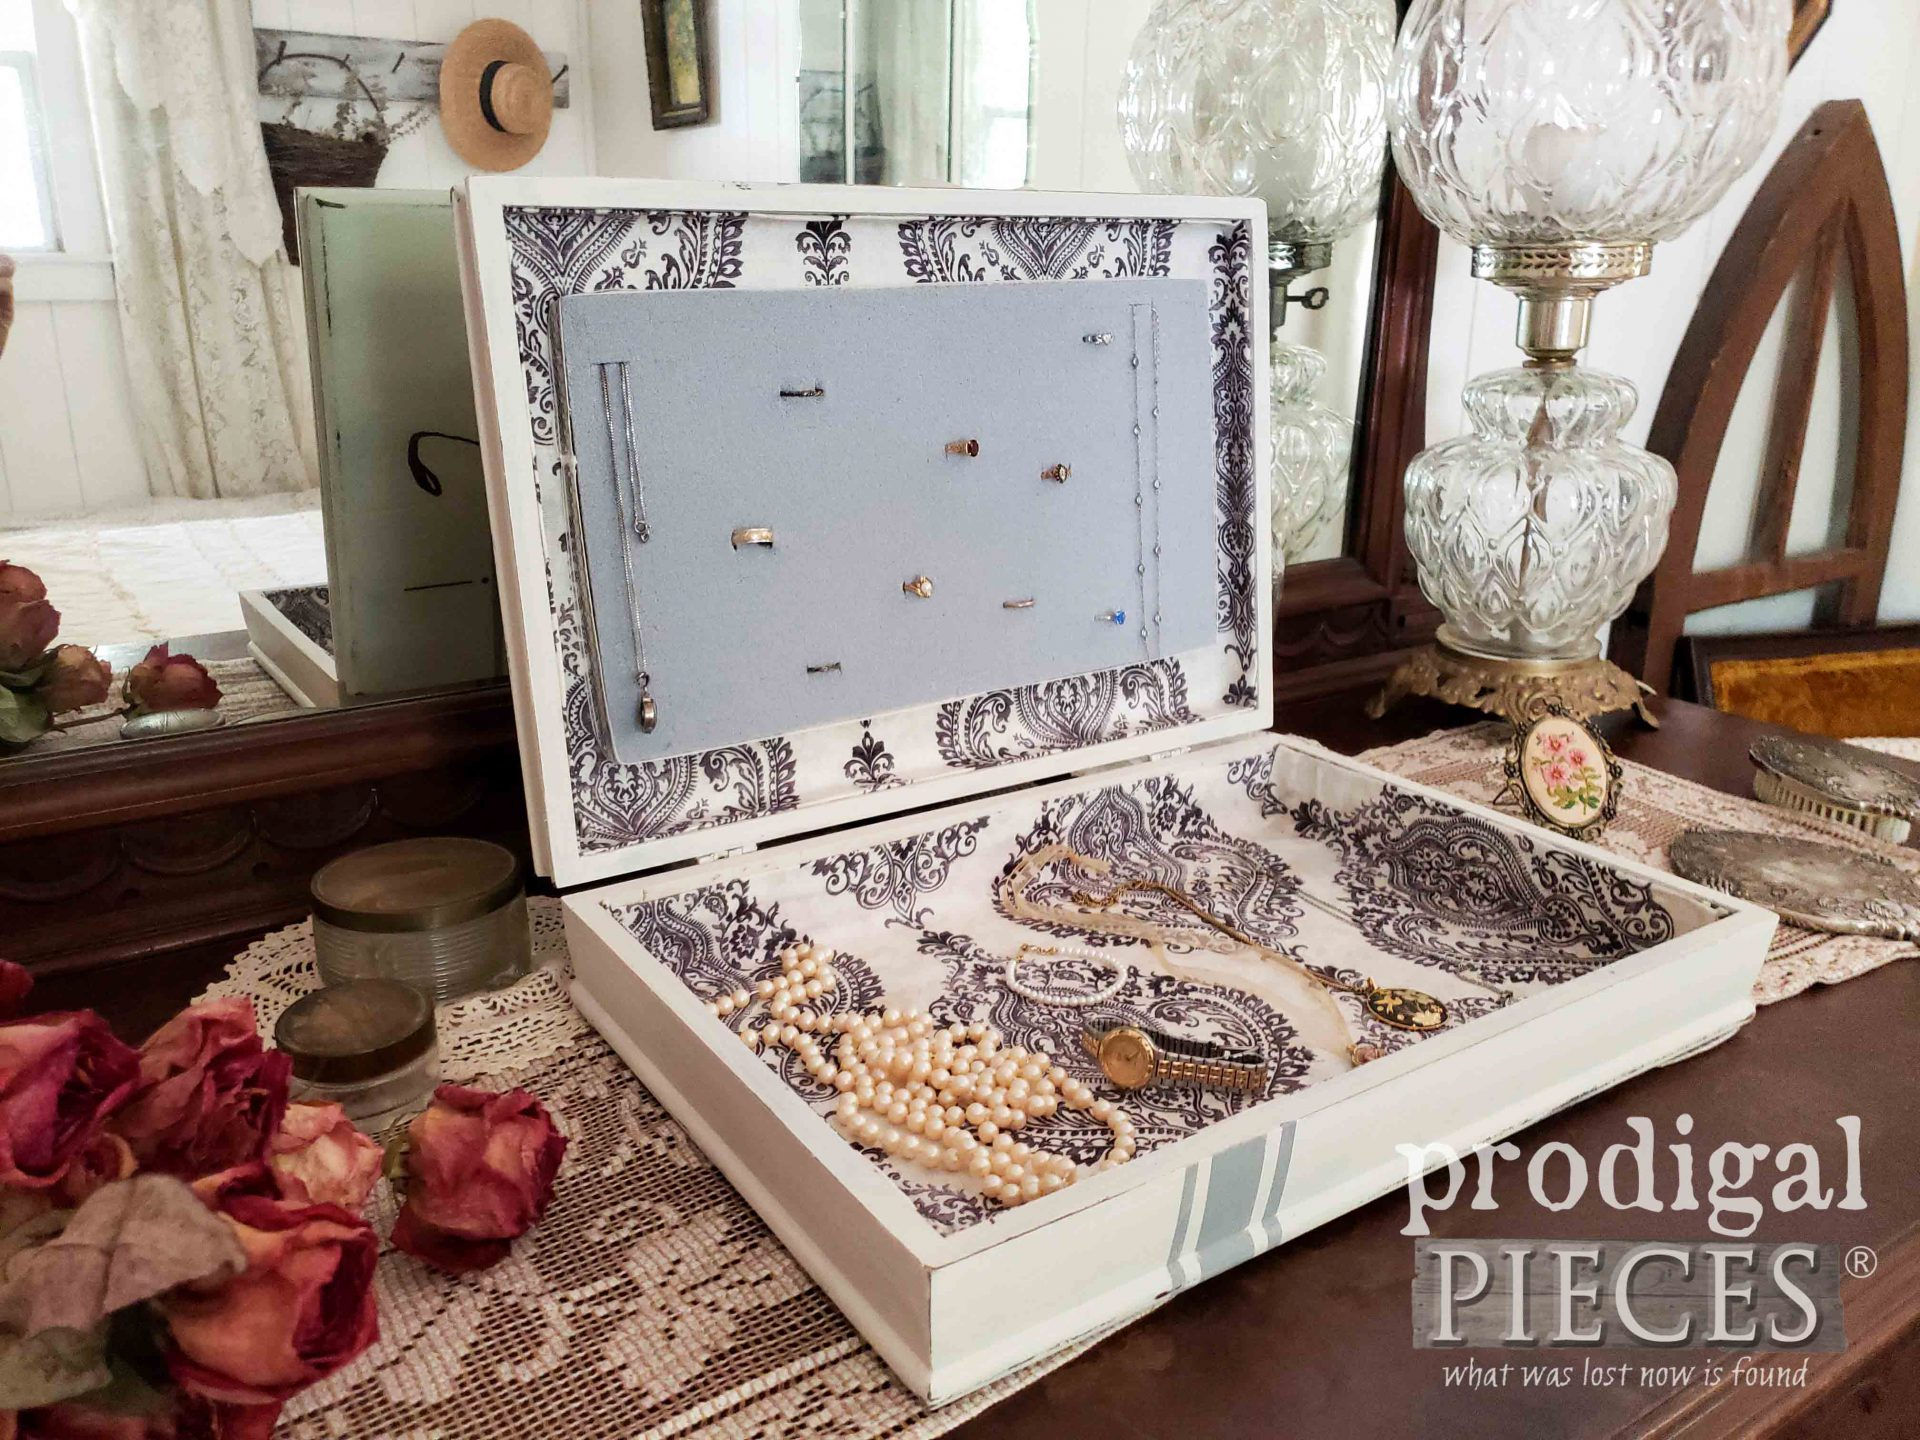 Jewelry Box with French Fleur de Lis Design from Upcycled Silverware Box by Prodigal Pieces | prodigalpieces.com #prodigalpieces #jewelry #diy #home #homedecor